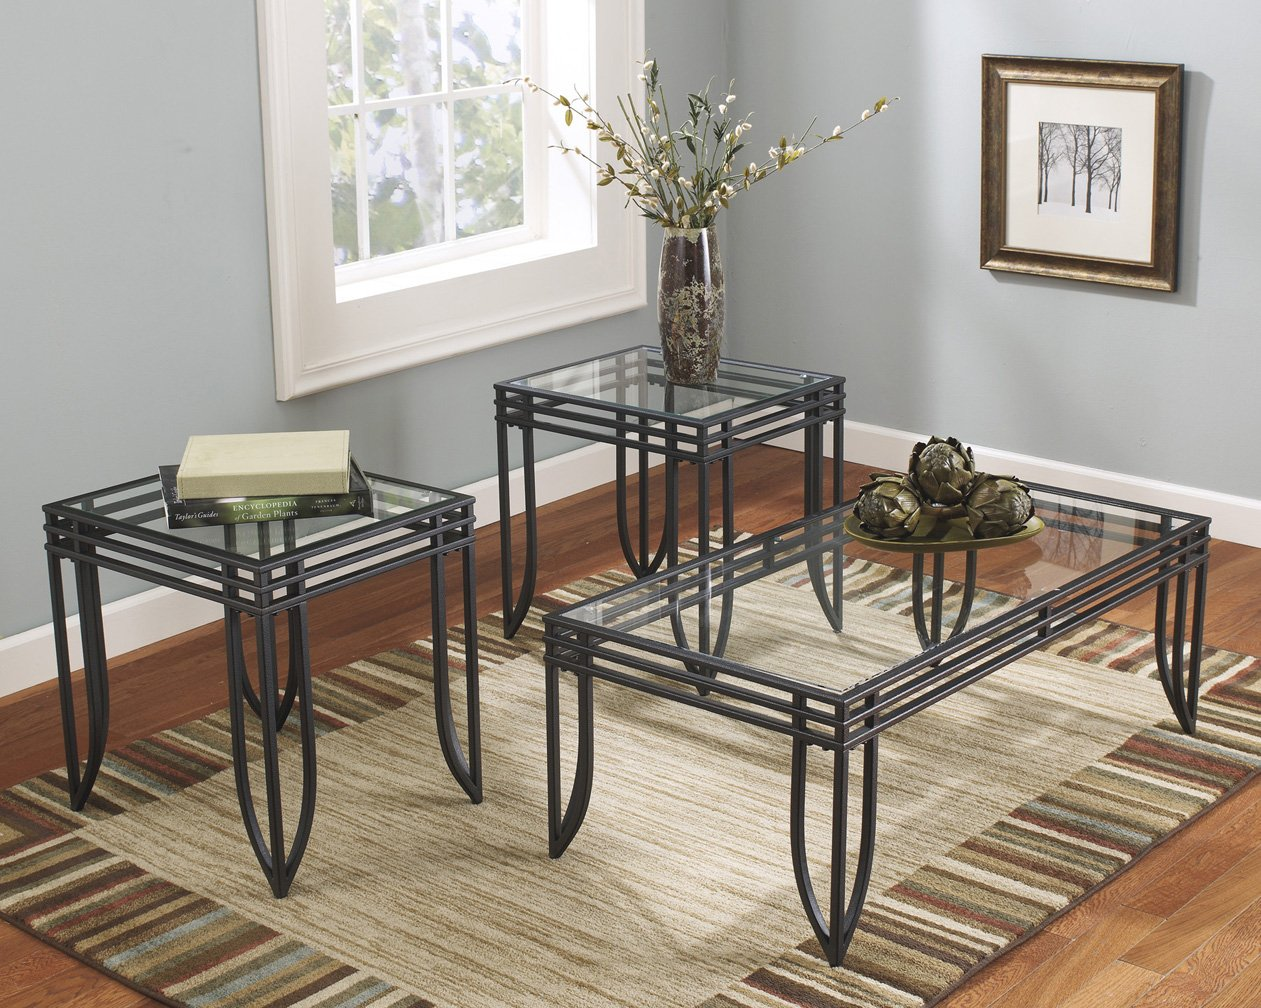 Amazon roundhill furniture 3307 matrix 3 in 1 metal frame amazon roundhill furniture 3307 matrix 3 in 1 metal frame accent coffee and 2 end table set kitchen dining watchthetrailerfo